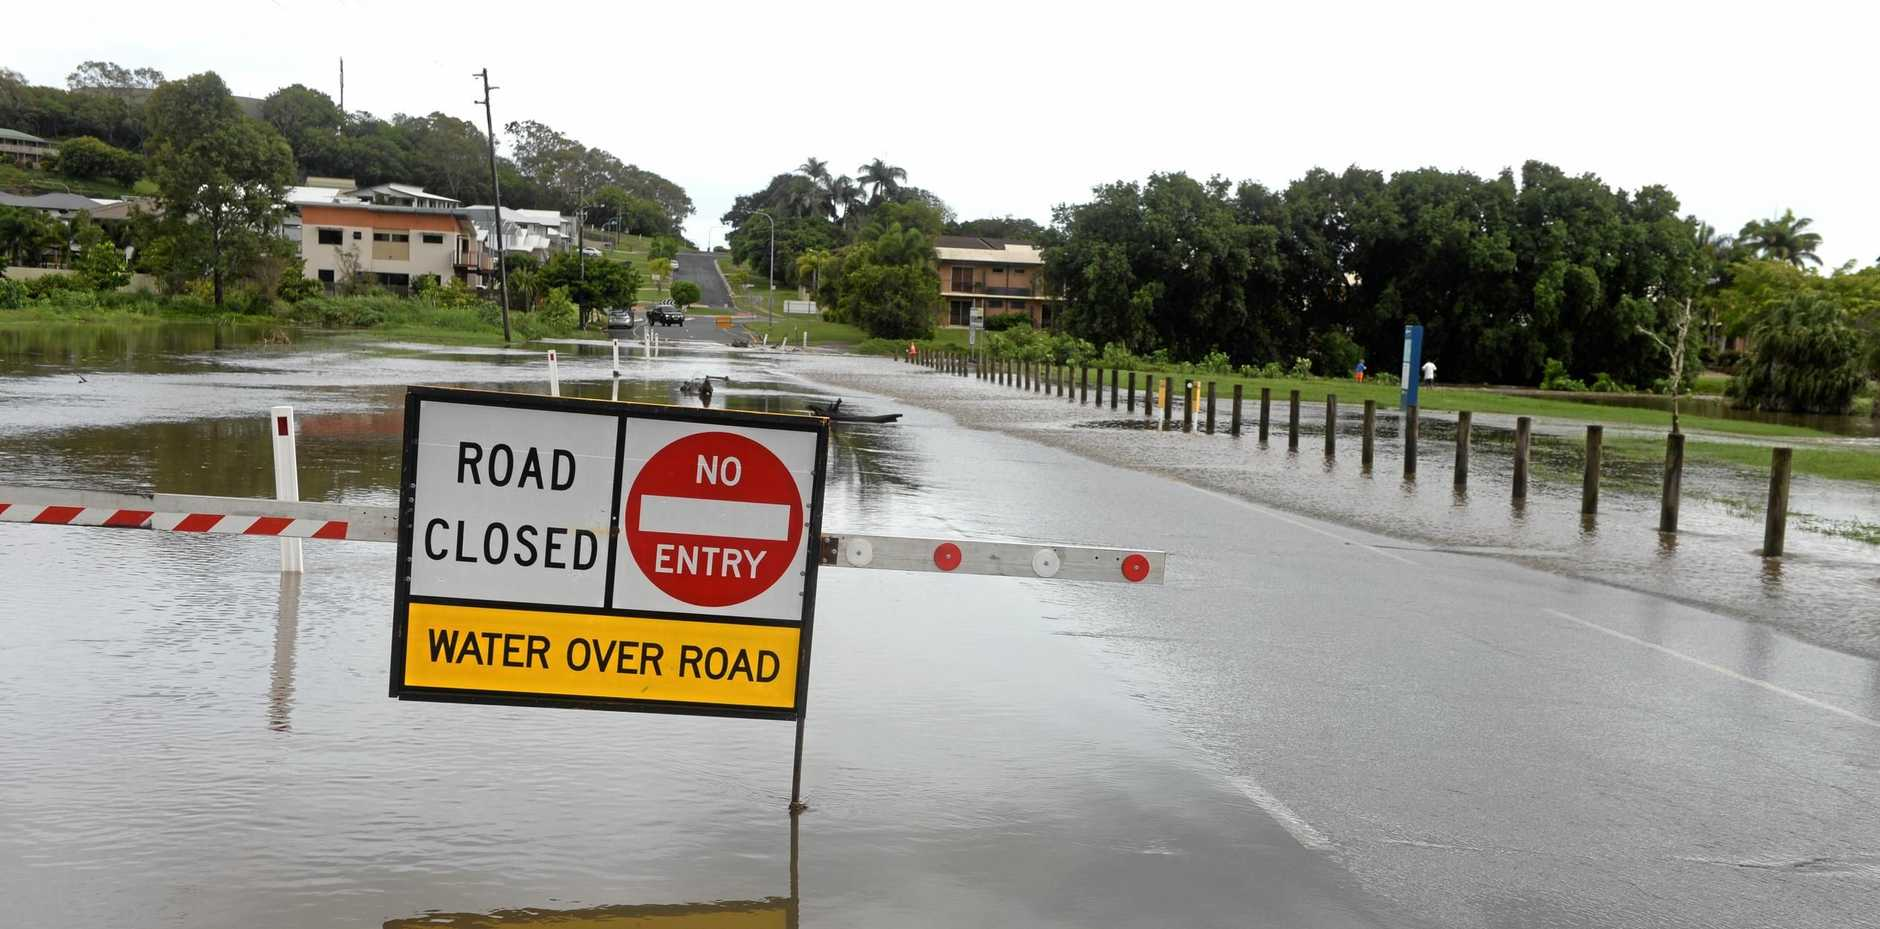 The Bundaberg region has copped its fair share of wild weather events in recent years and now all the information residents need can all be found in one place through Bundaberg Regional Council's Disaster Dashboard.